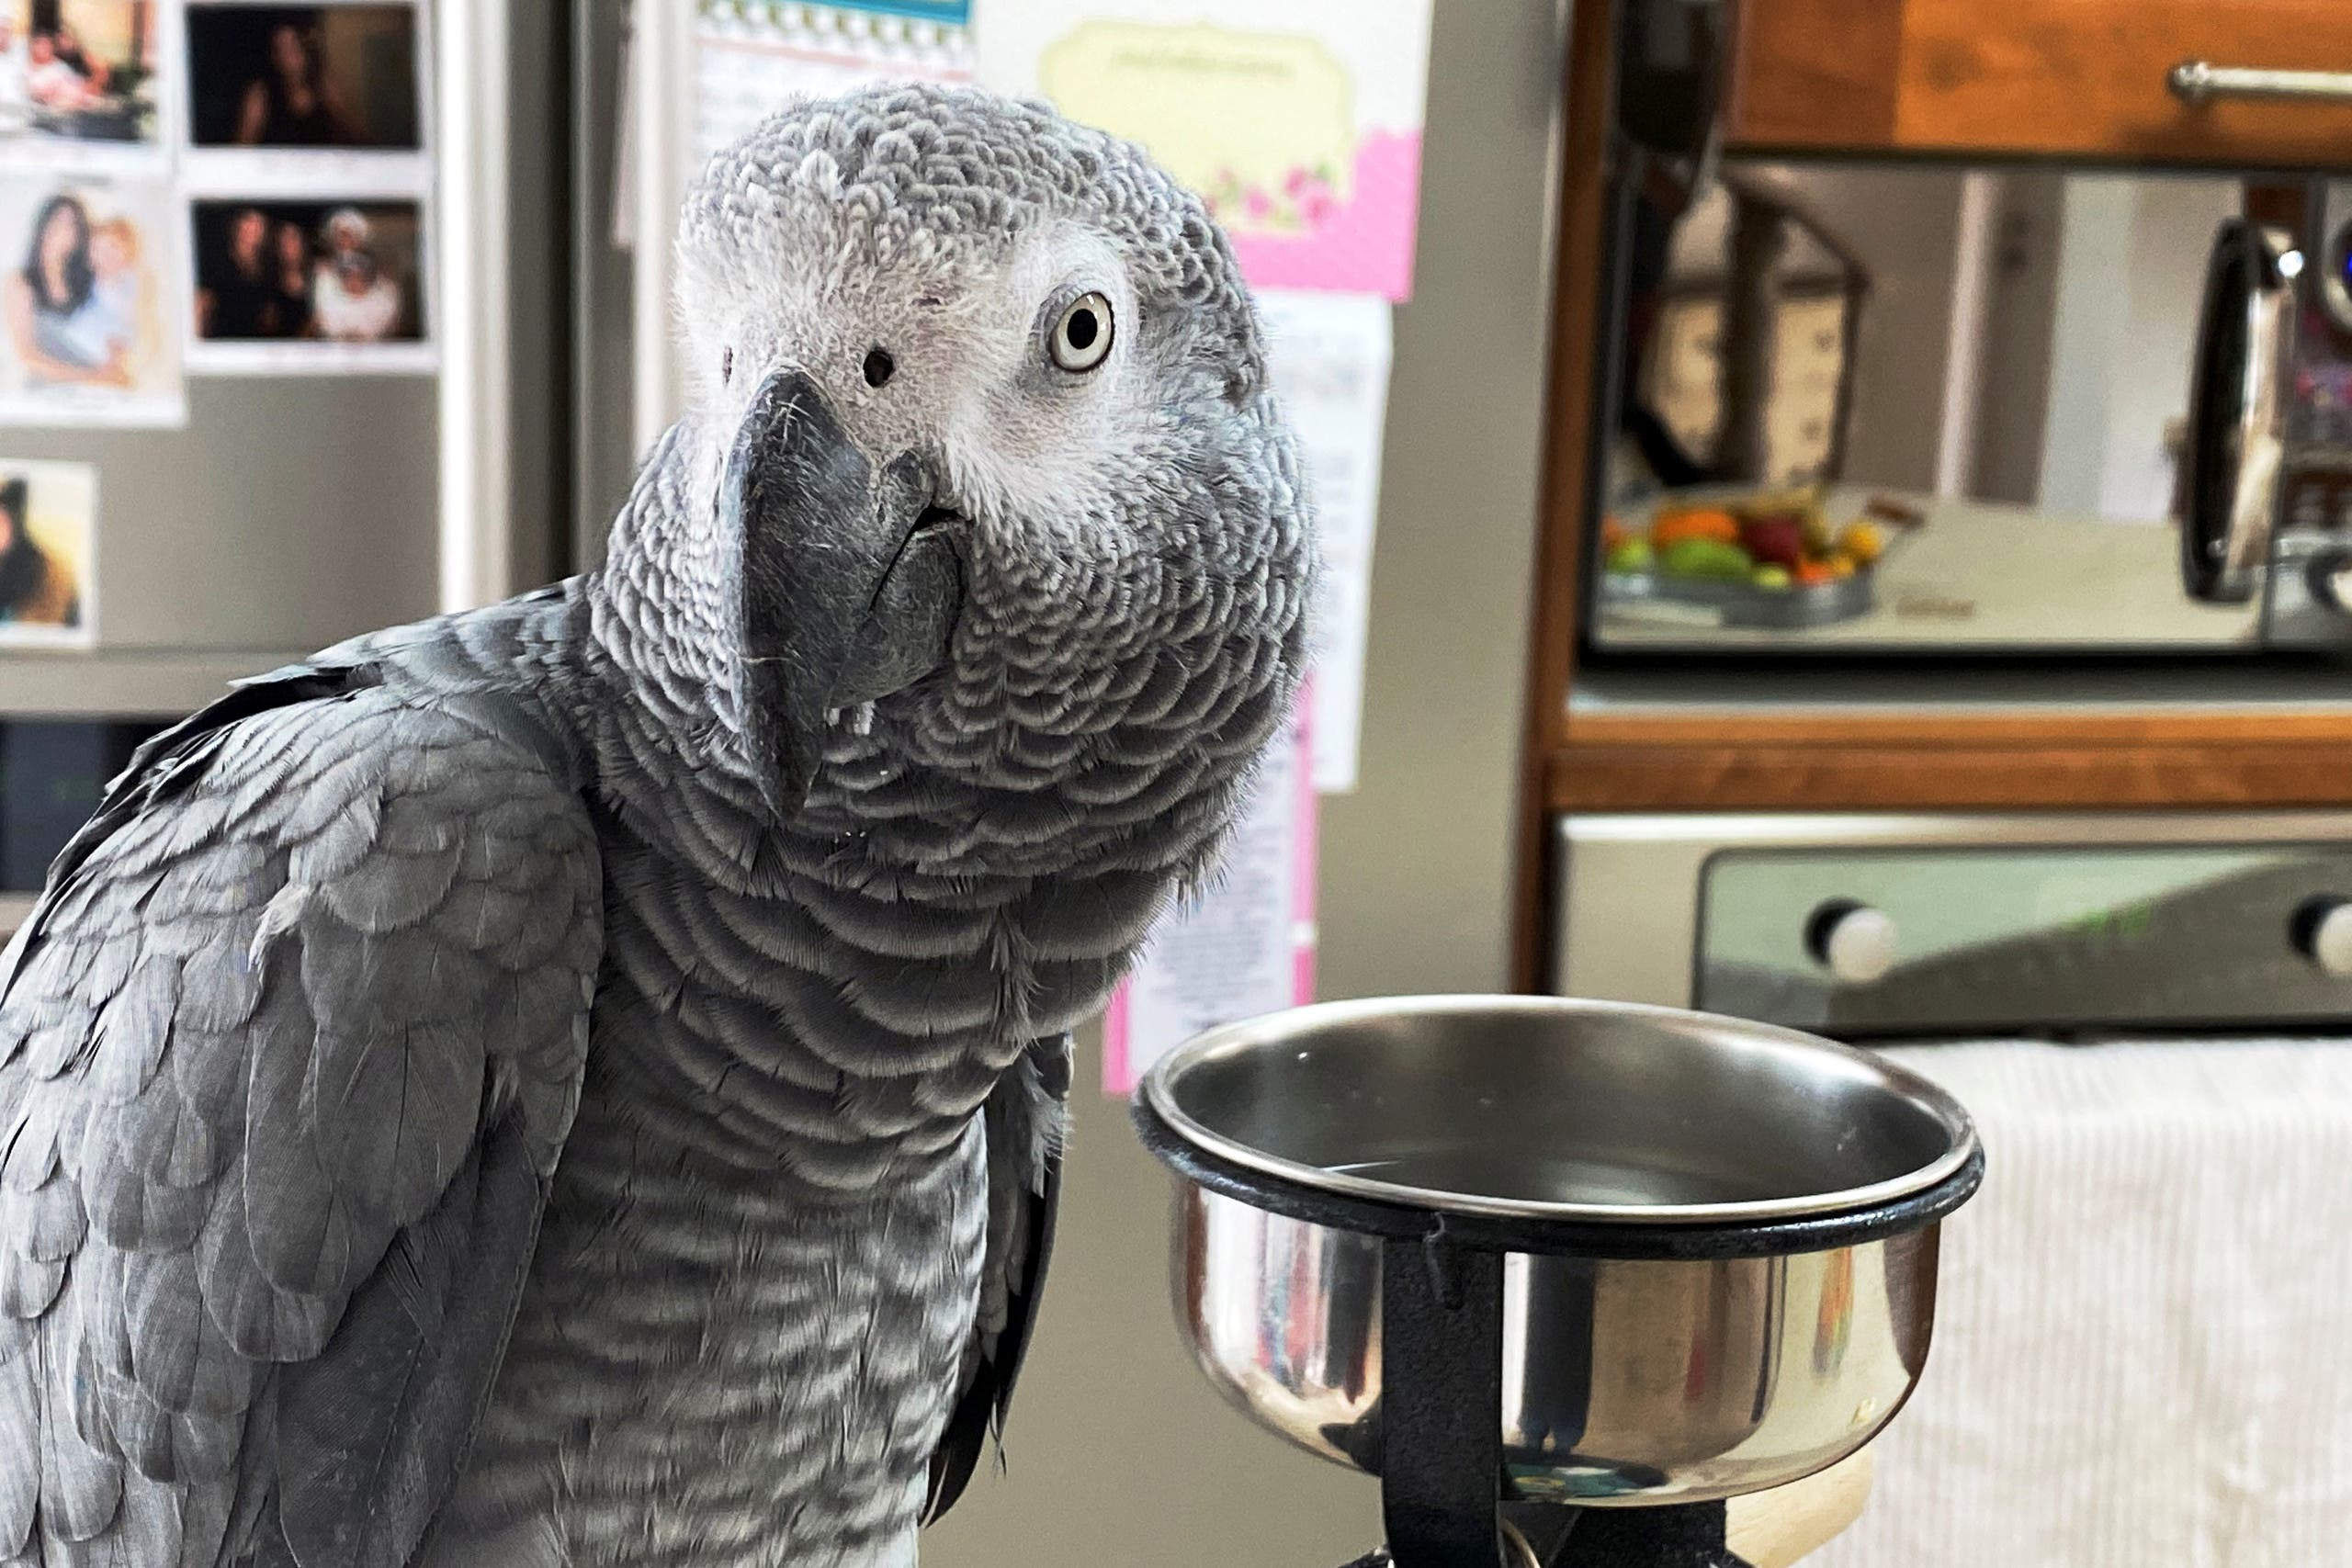 Luca, a parrot that has learnt to mimic and say the words, there is corona and don't go out amid the Coronavirus disease (COVID-19) crisis, looks on as its owner, Zehava Shabat is interviewed by Reuters in Kiryat Shmona, northern Israel March 24, 2020. (Reuters)